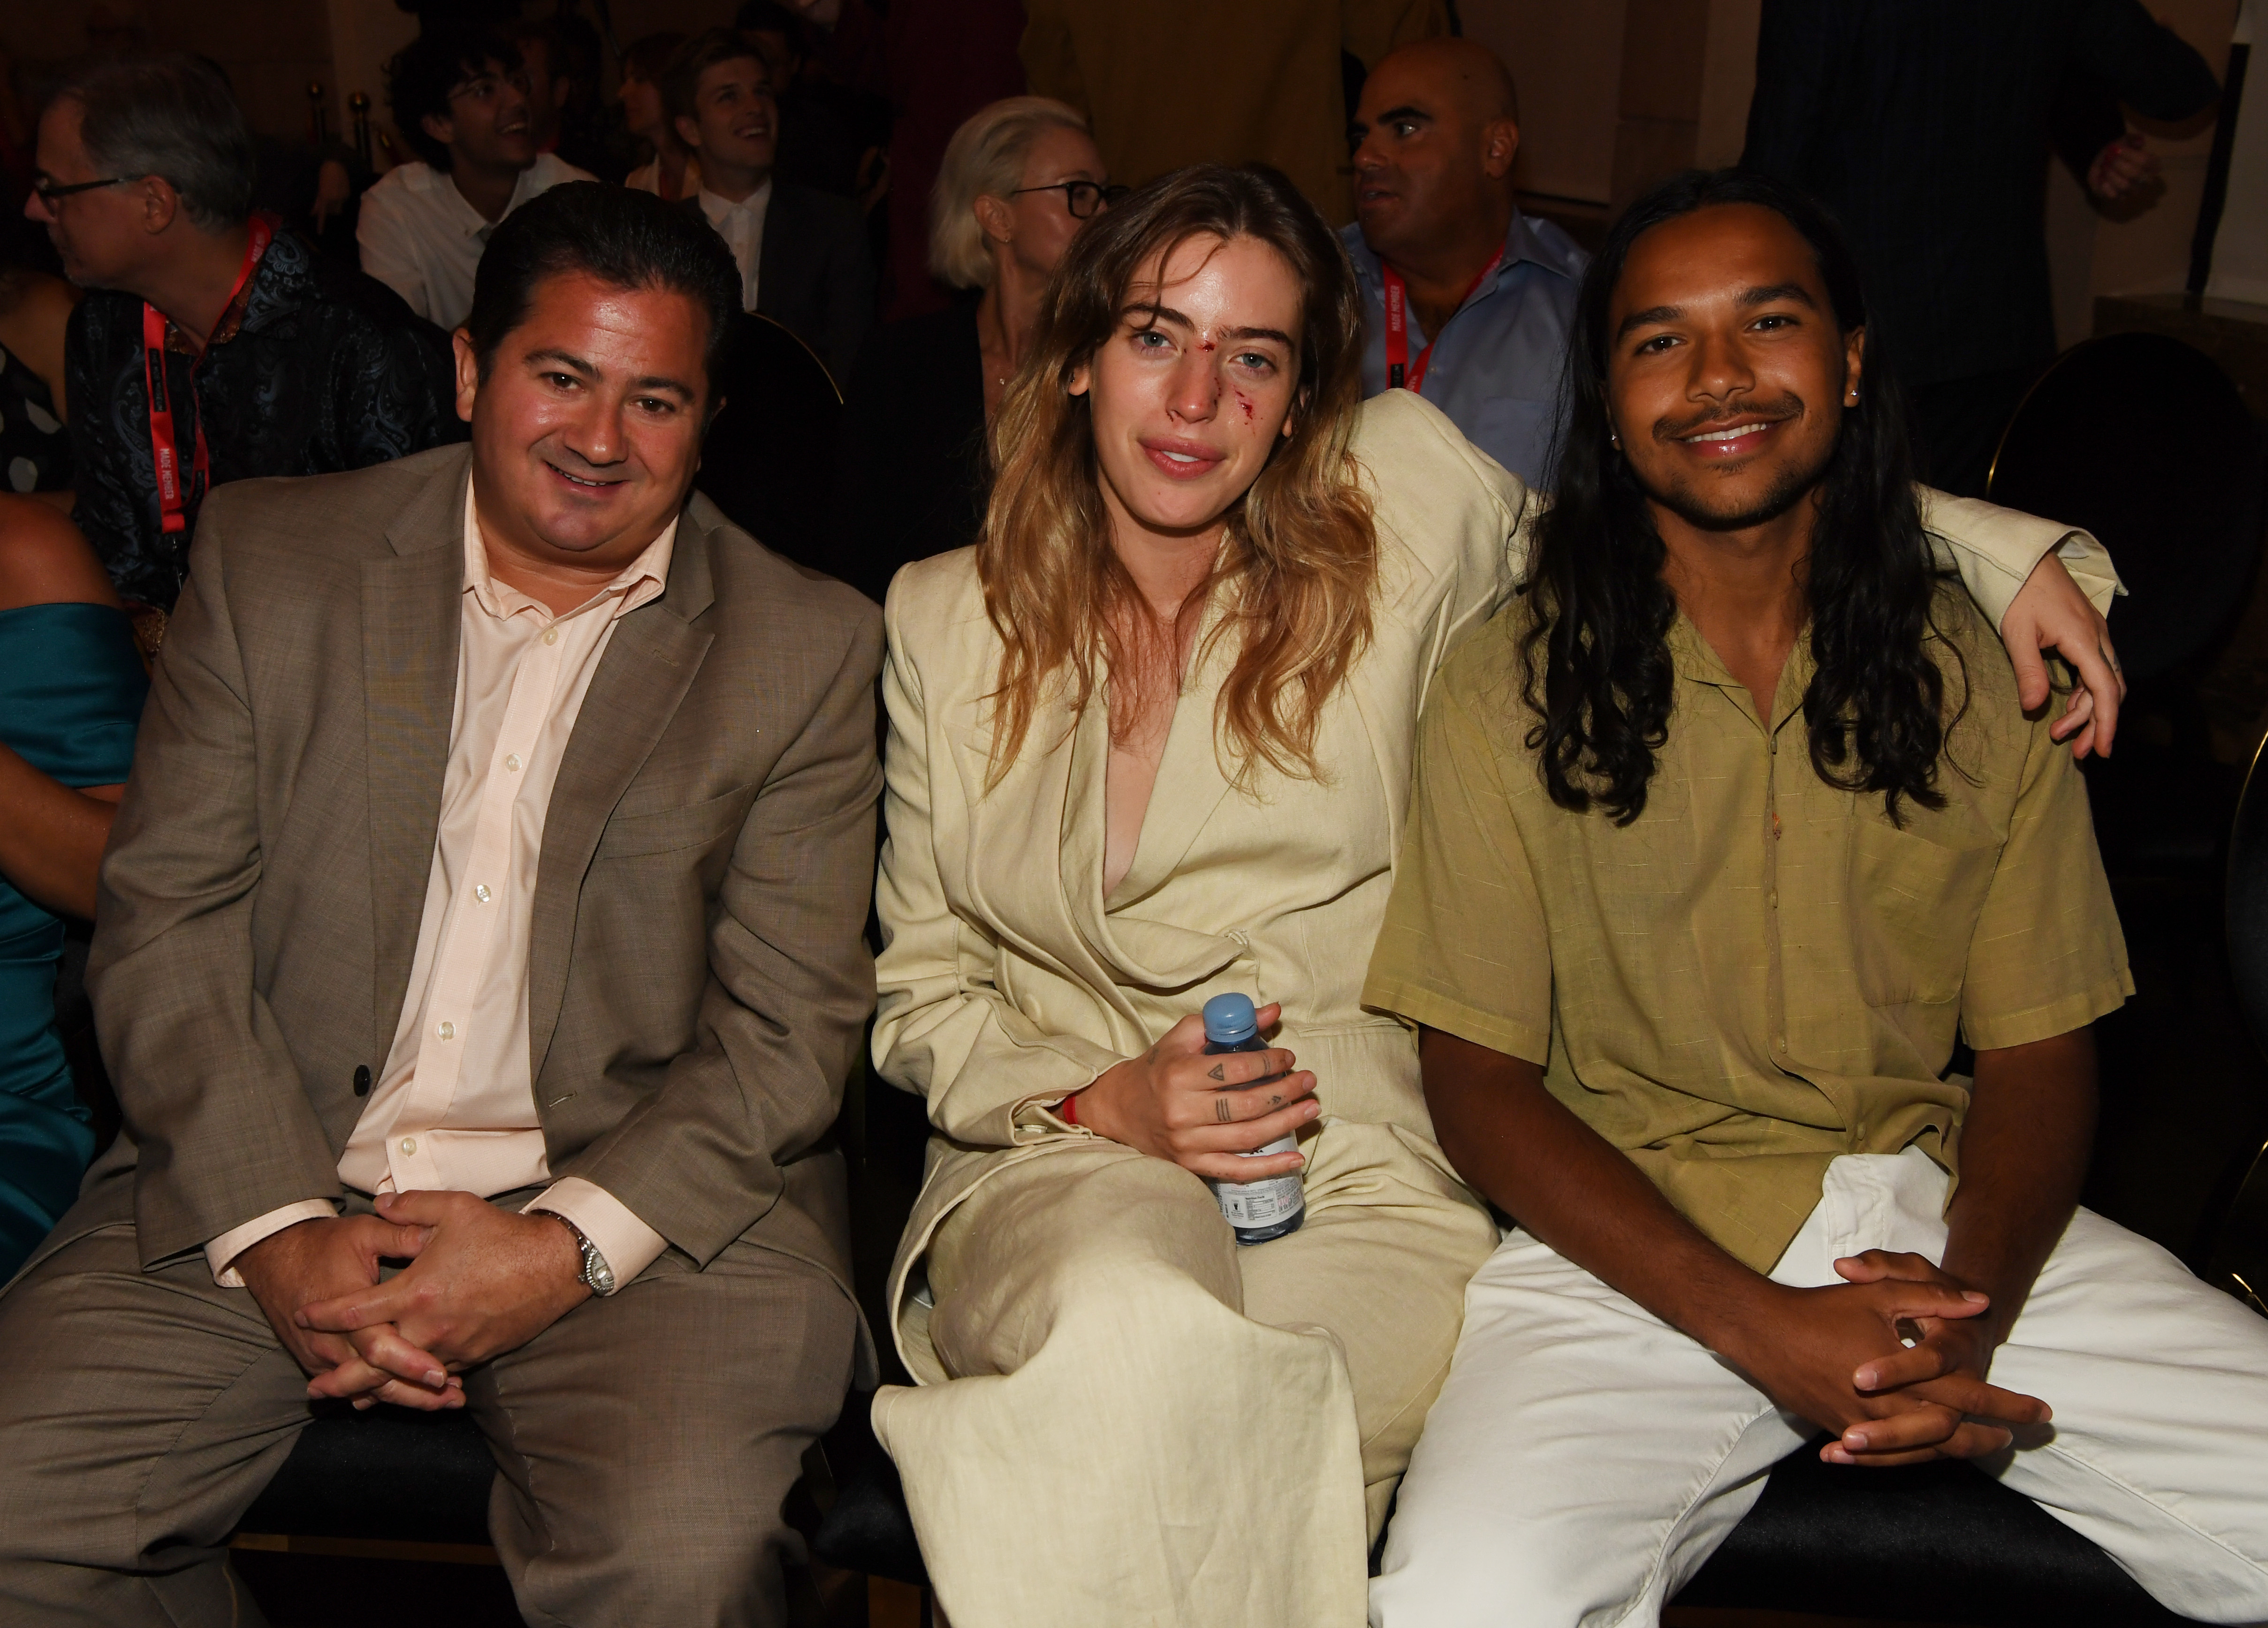 Joe D'Onofrio, Clara McGregor and Tyler Dean Flores attend the world premiere of feature film The Birthday Cake at The Mob Museum on June 11, 2021 in Las Vegas, Nevada.